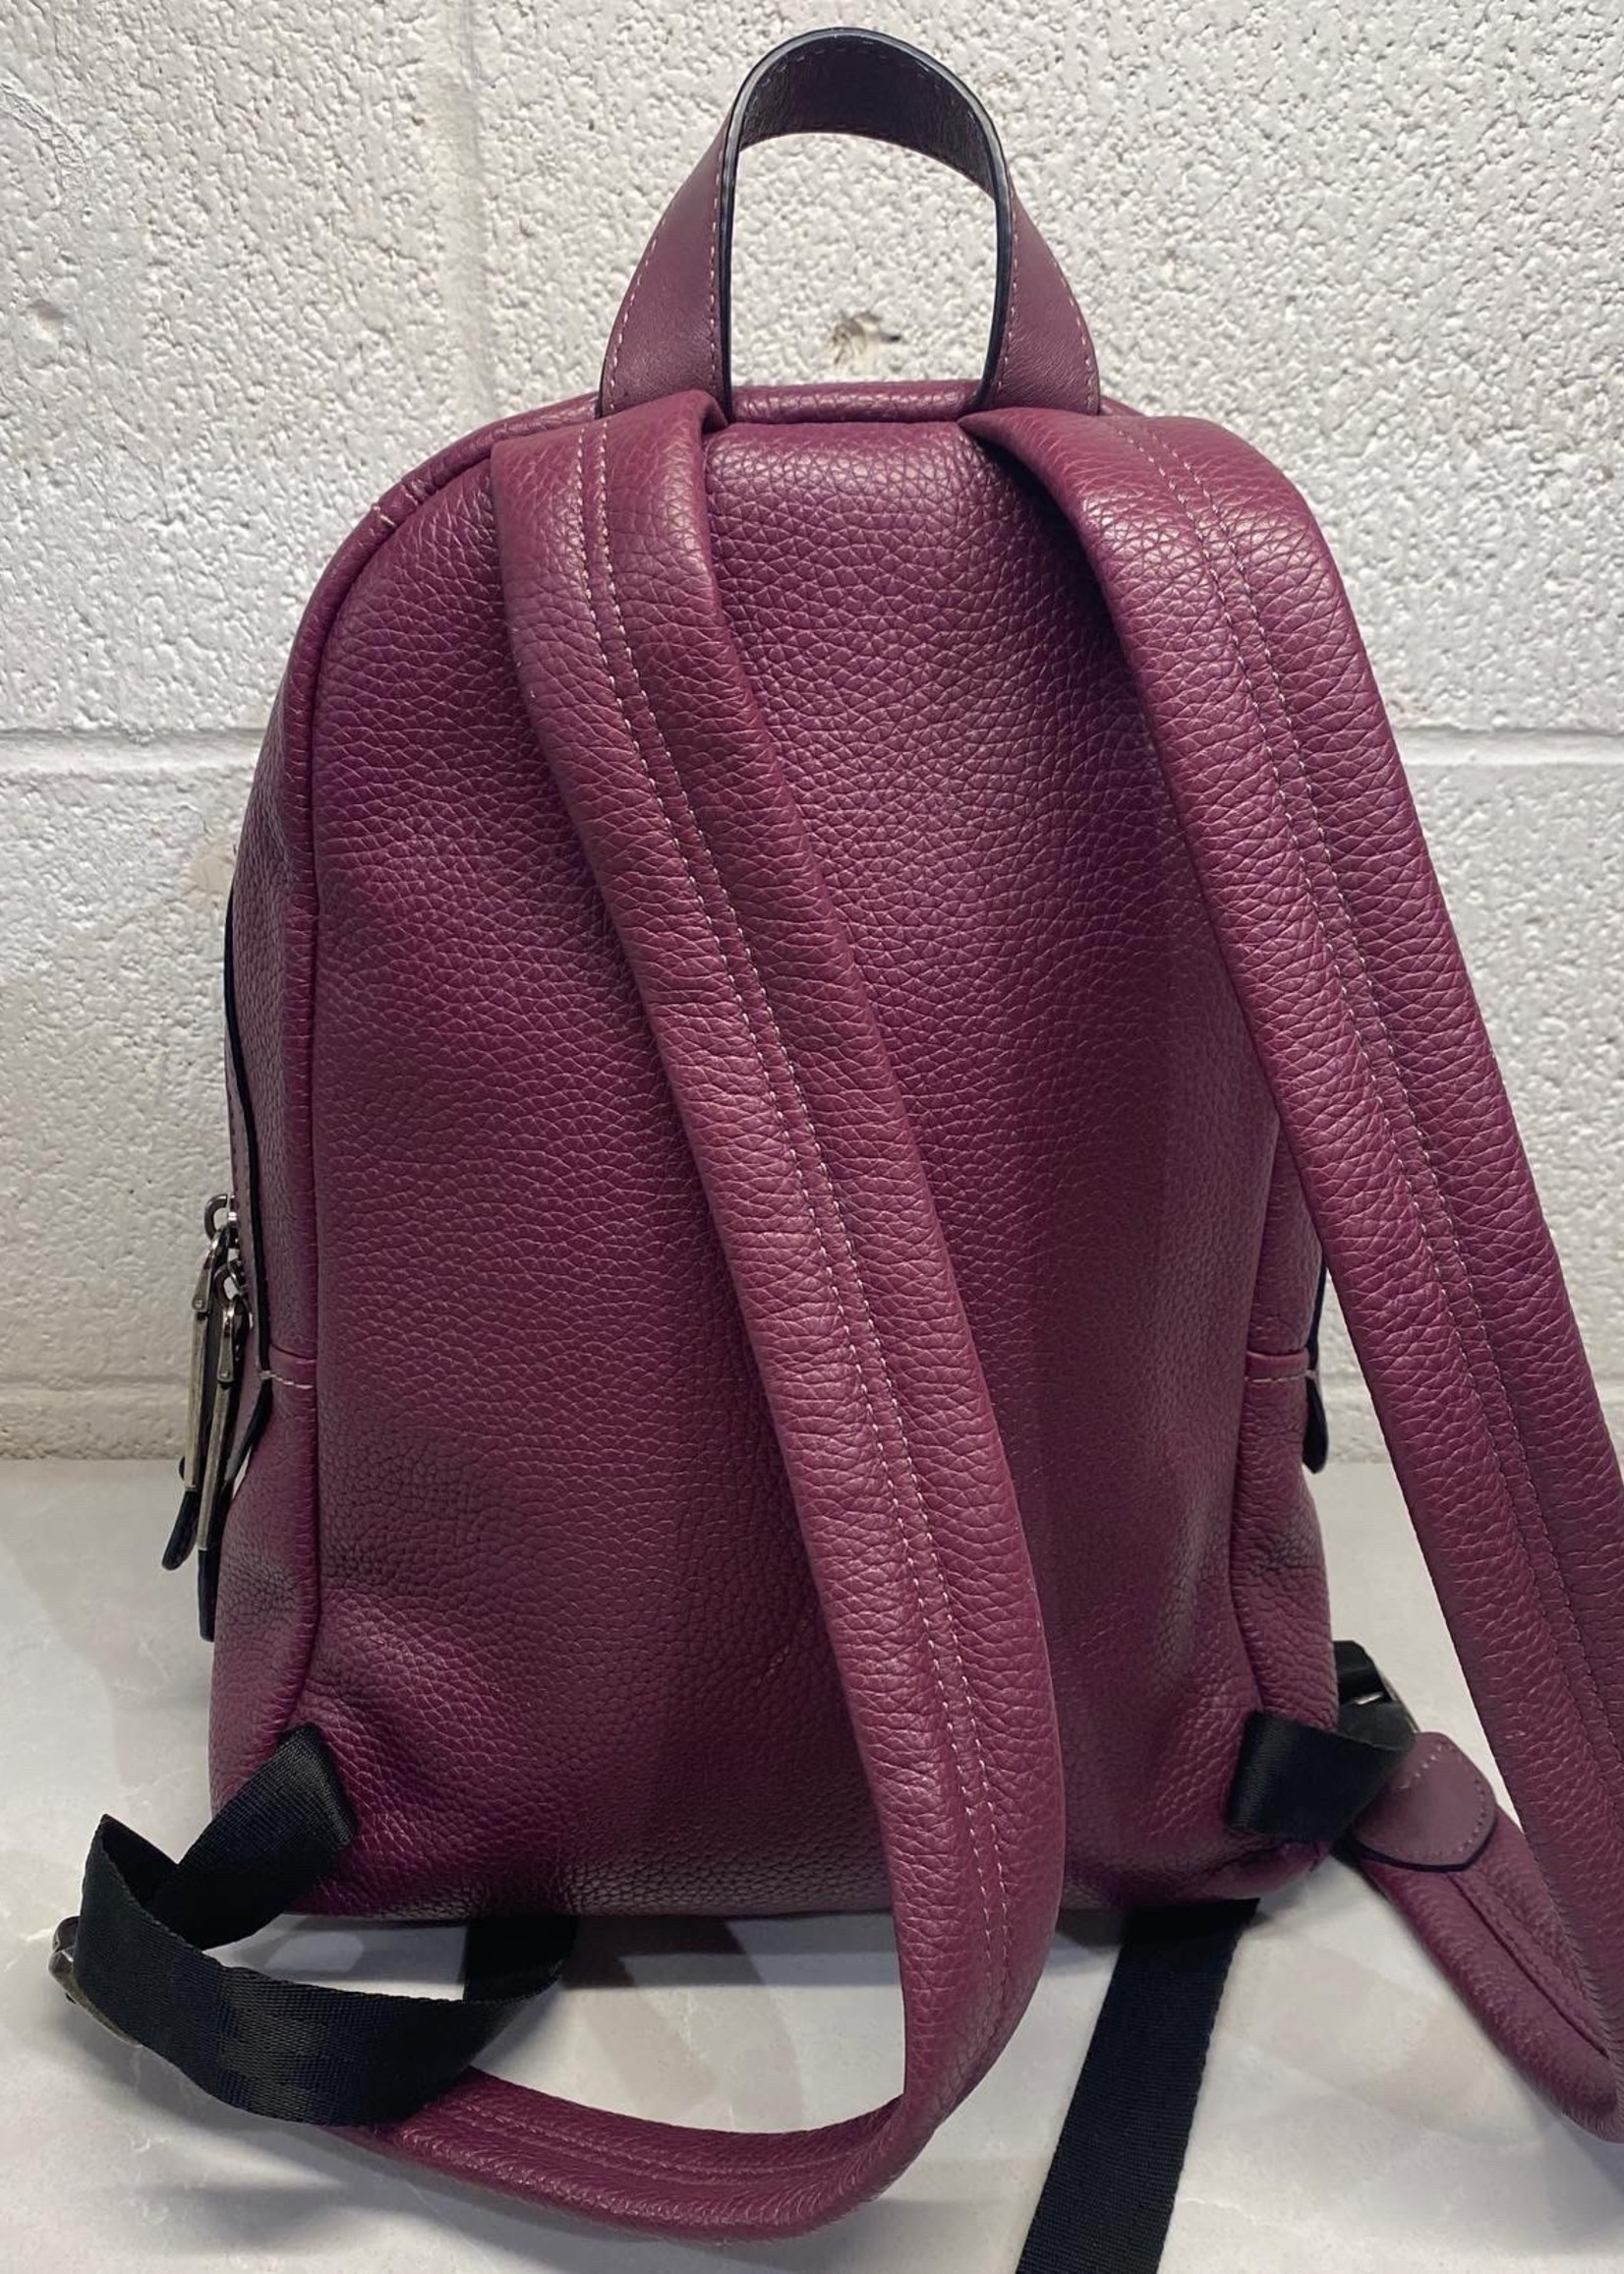 Marc Jacobs Purple Leather Backpack (Original Retail $475)